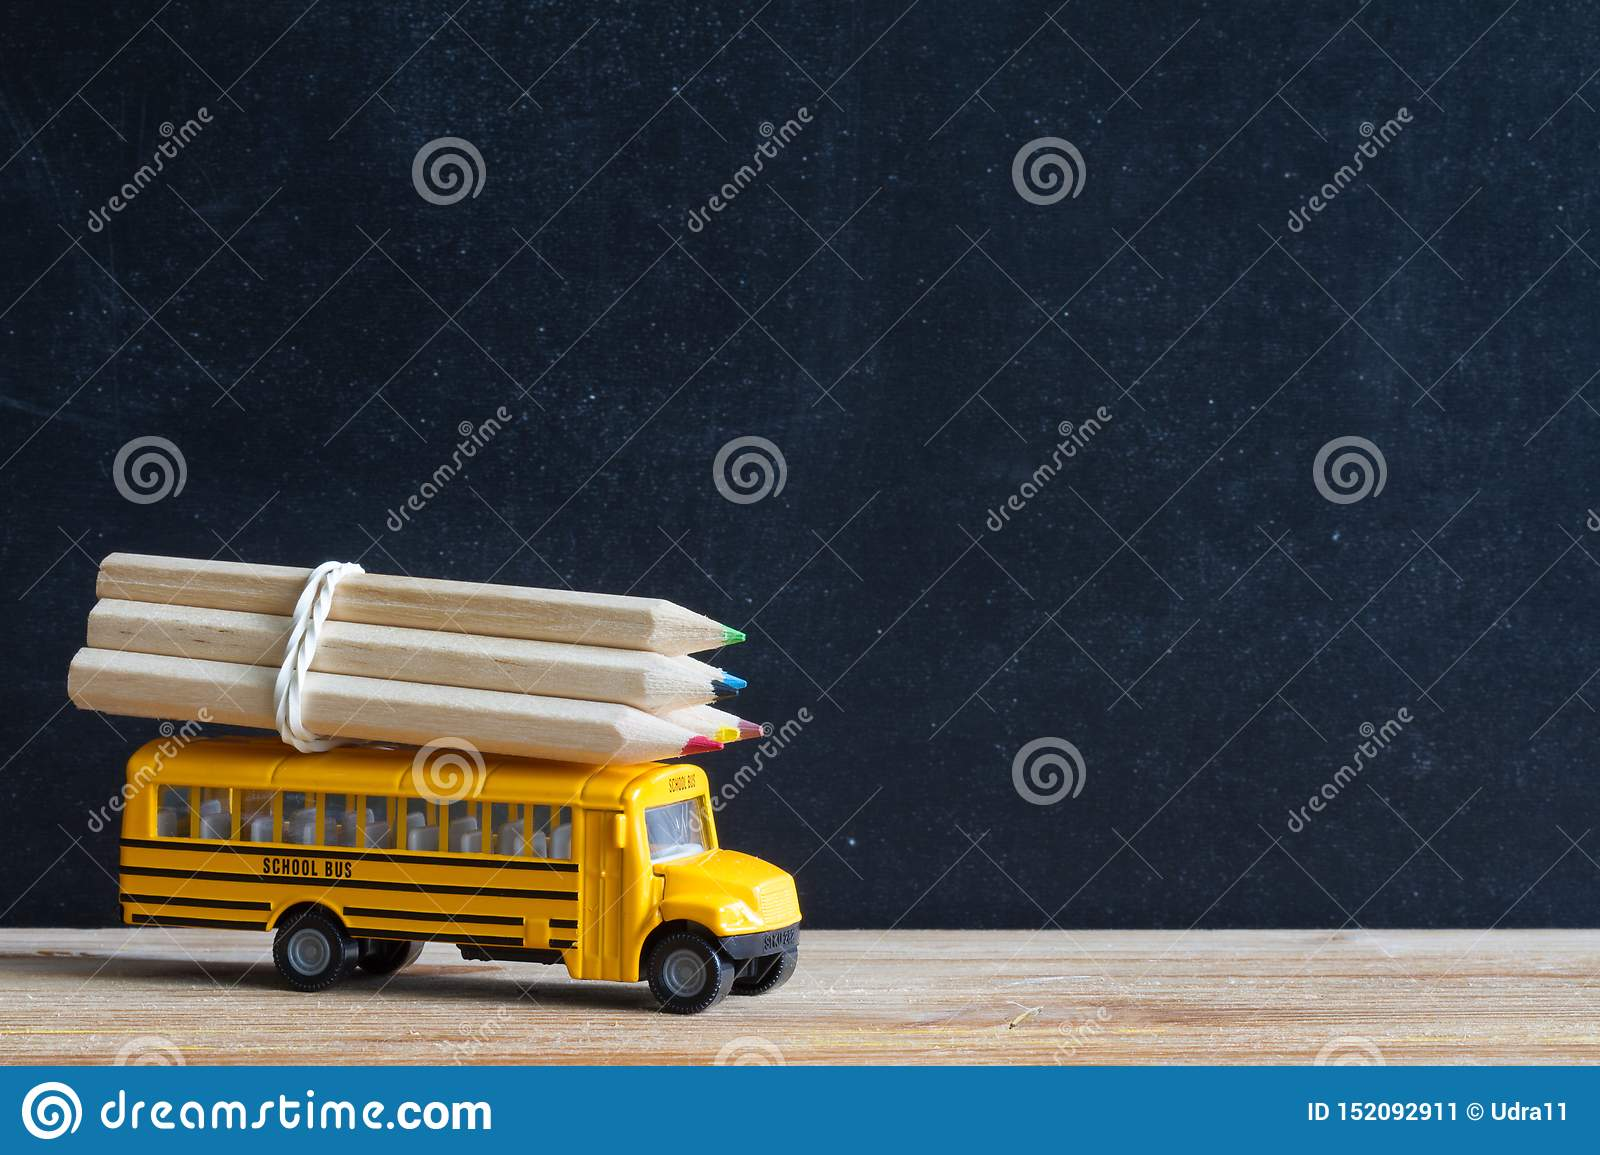 Back to school background concept with bus and accessories on blackboard